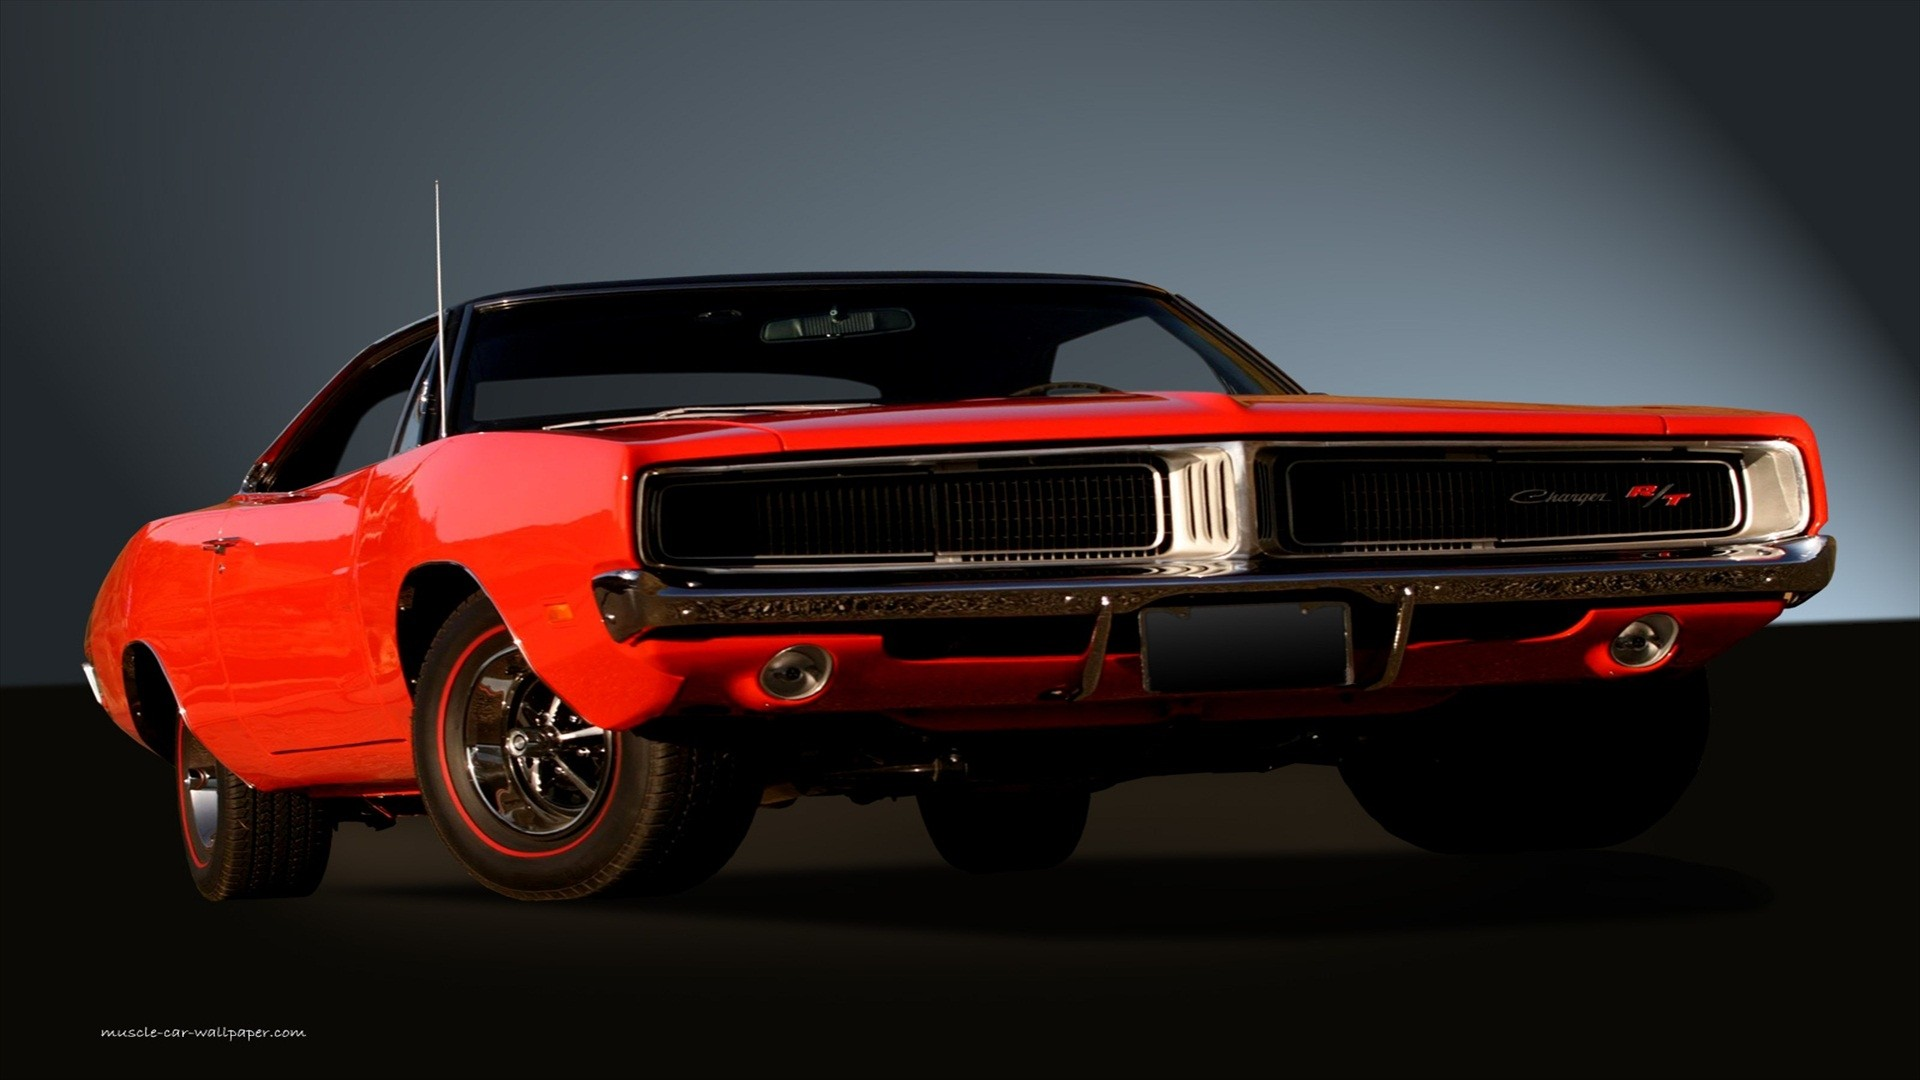 Dodge Charger Wallpaper For Pc